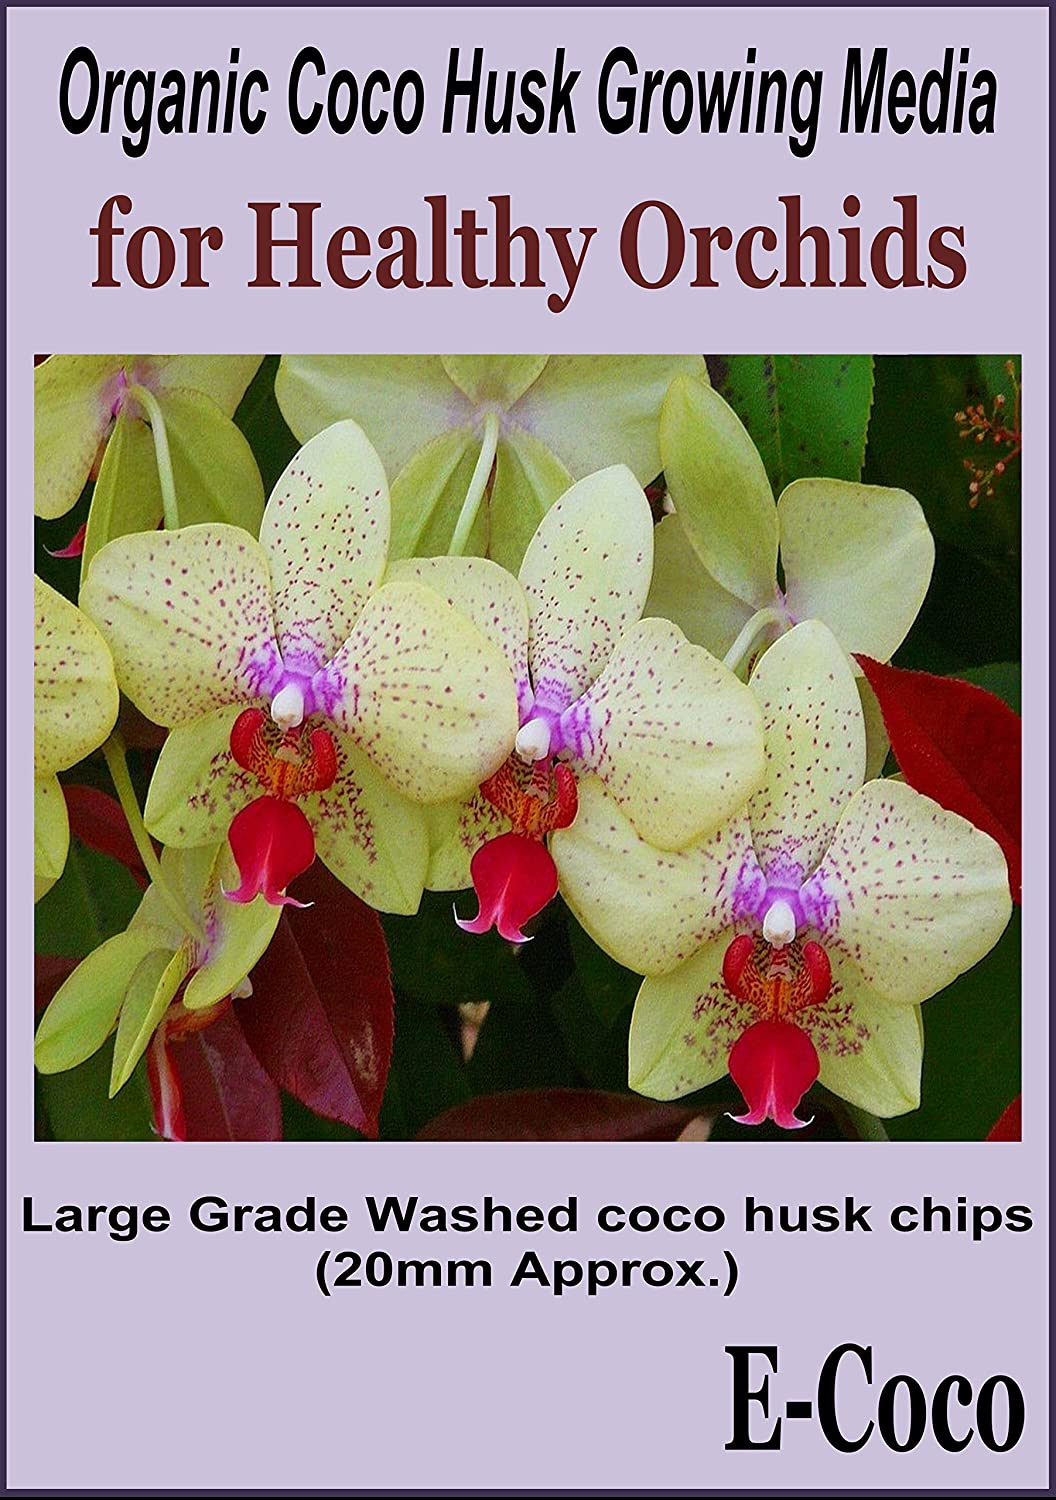 ORCHID COMPOST LARGE GRADE S COCONUT HUSK CHIPS READY TO USE (1 LITRE) E-COCO PRODUCTS UK